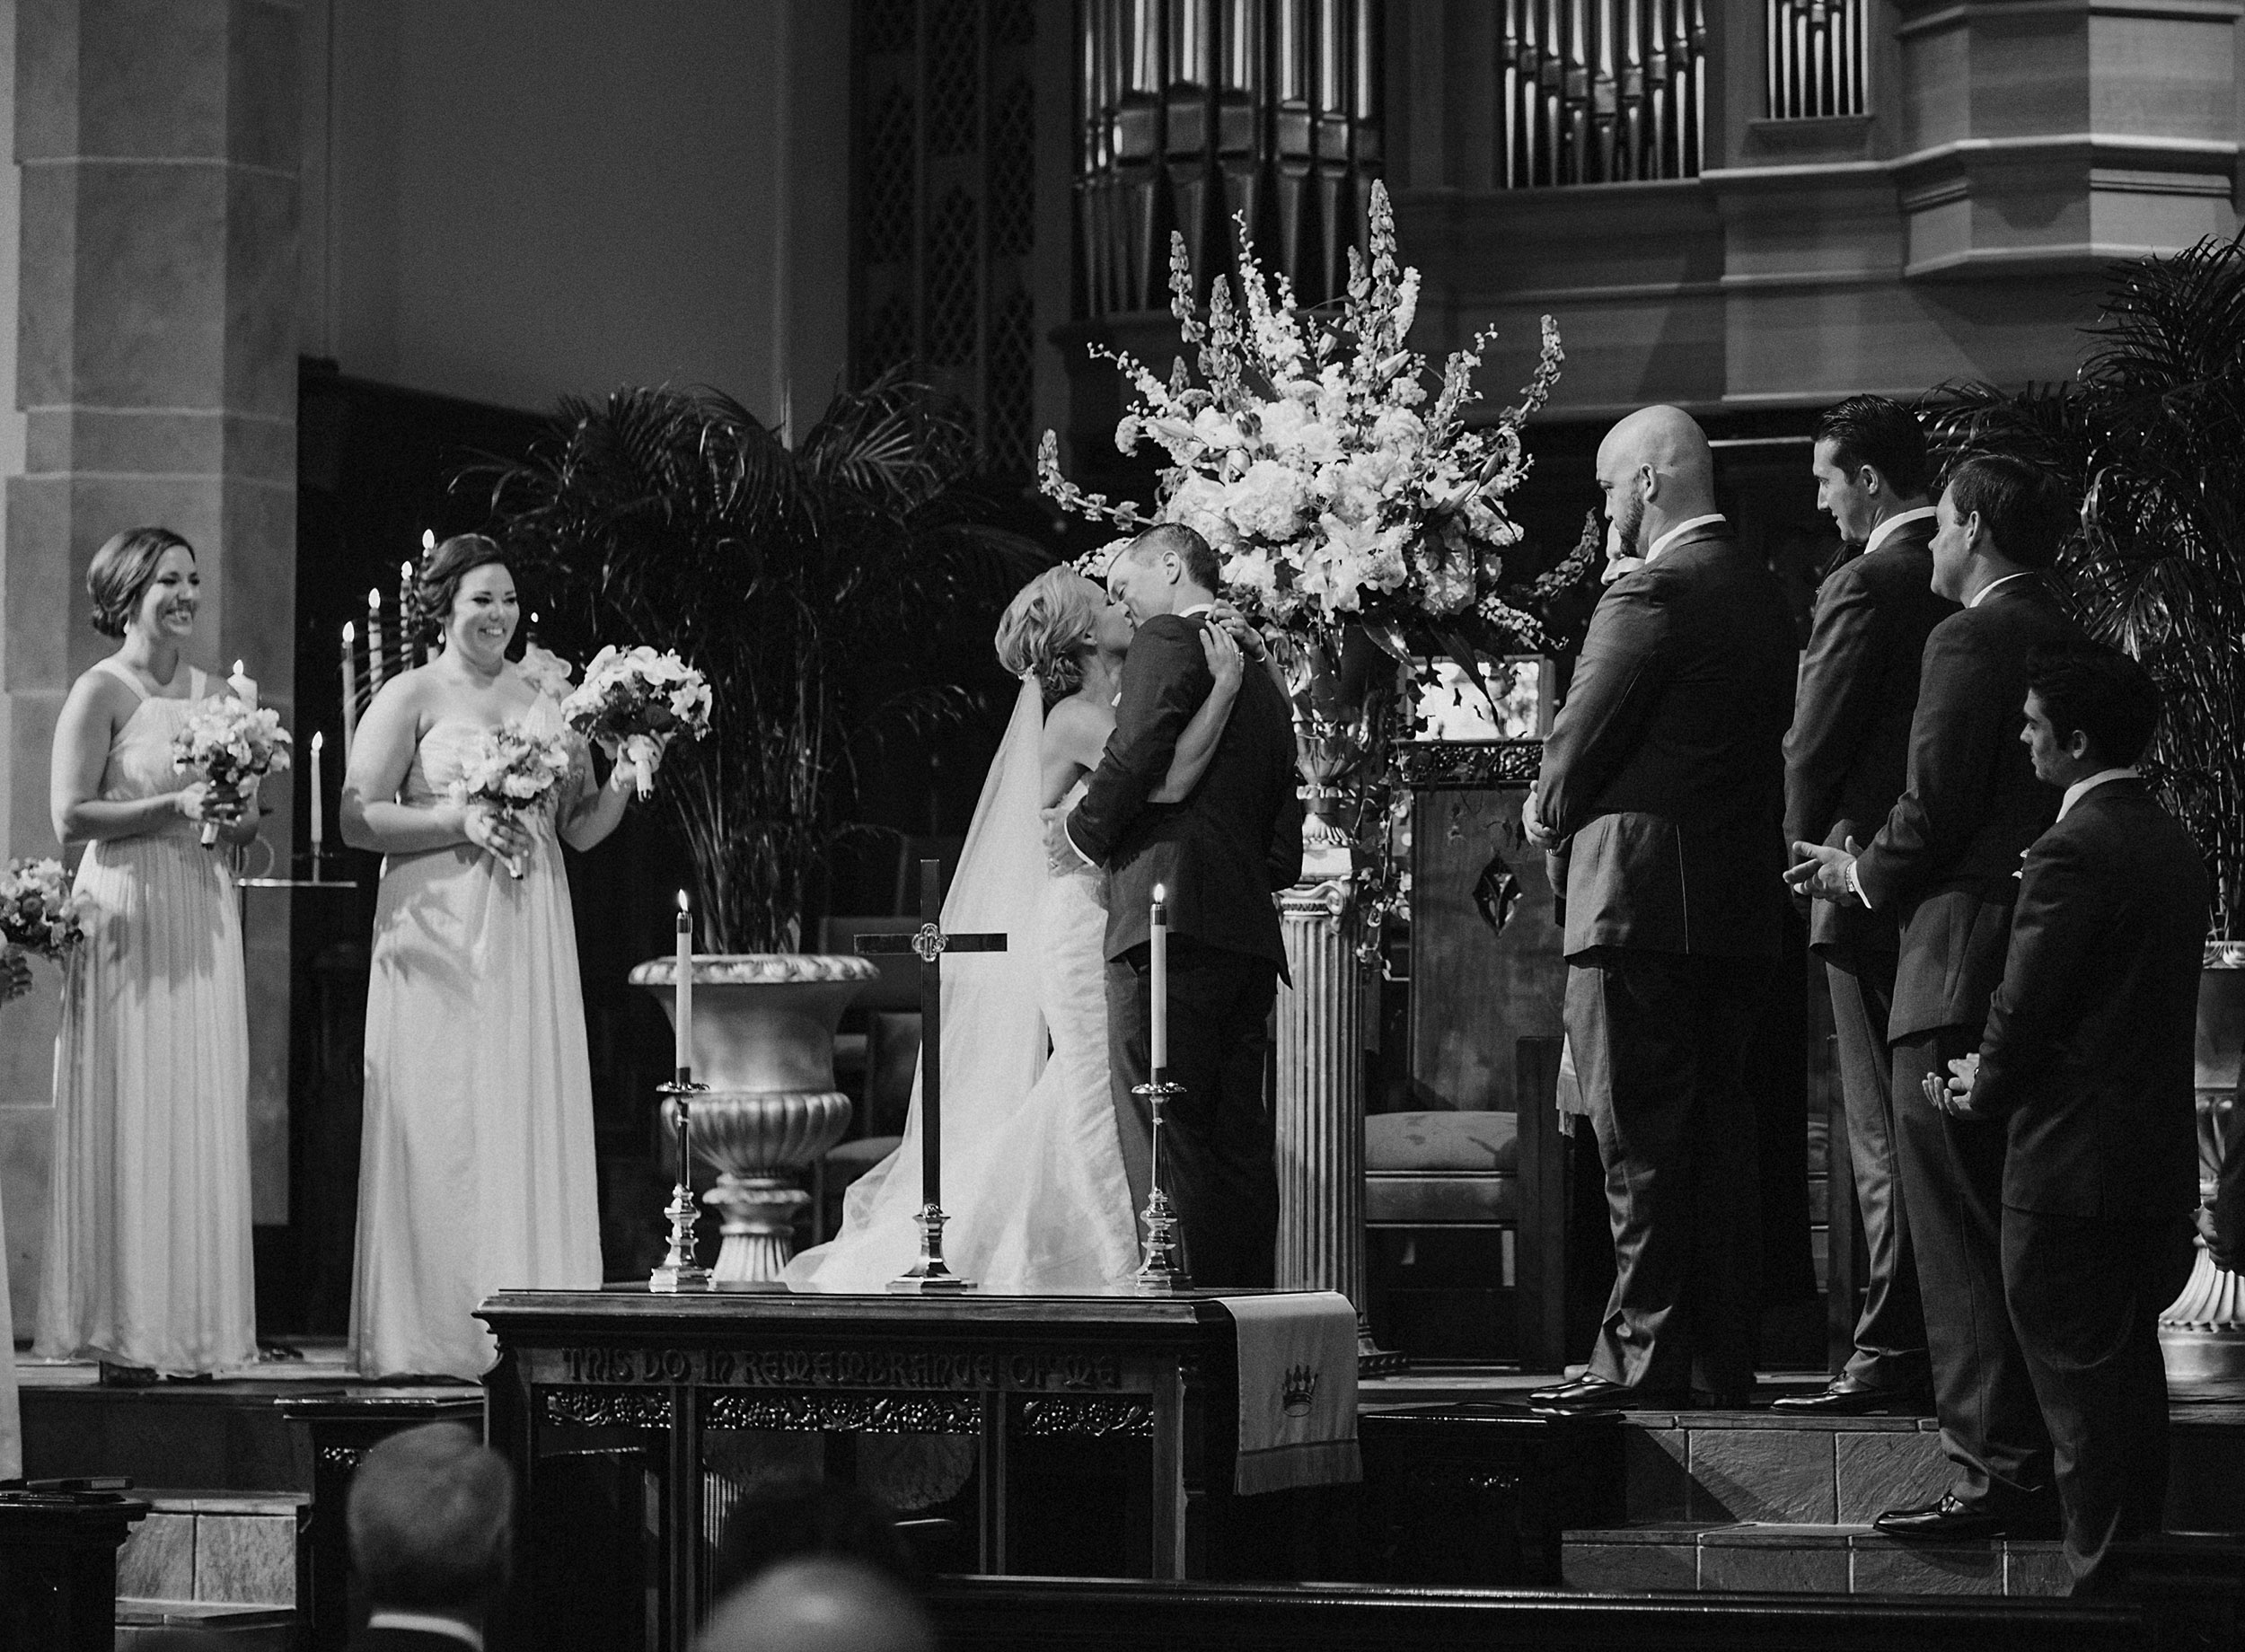 louisville-wedding-st.-paul-church-019.JPG